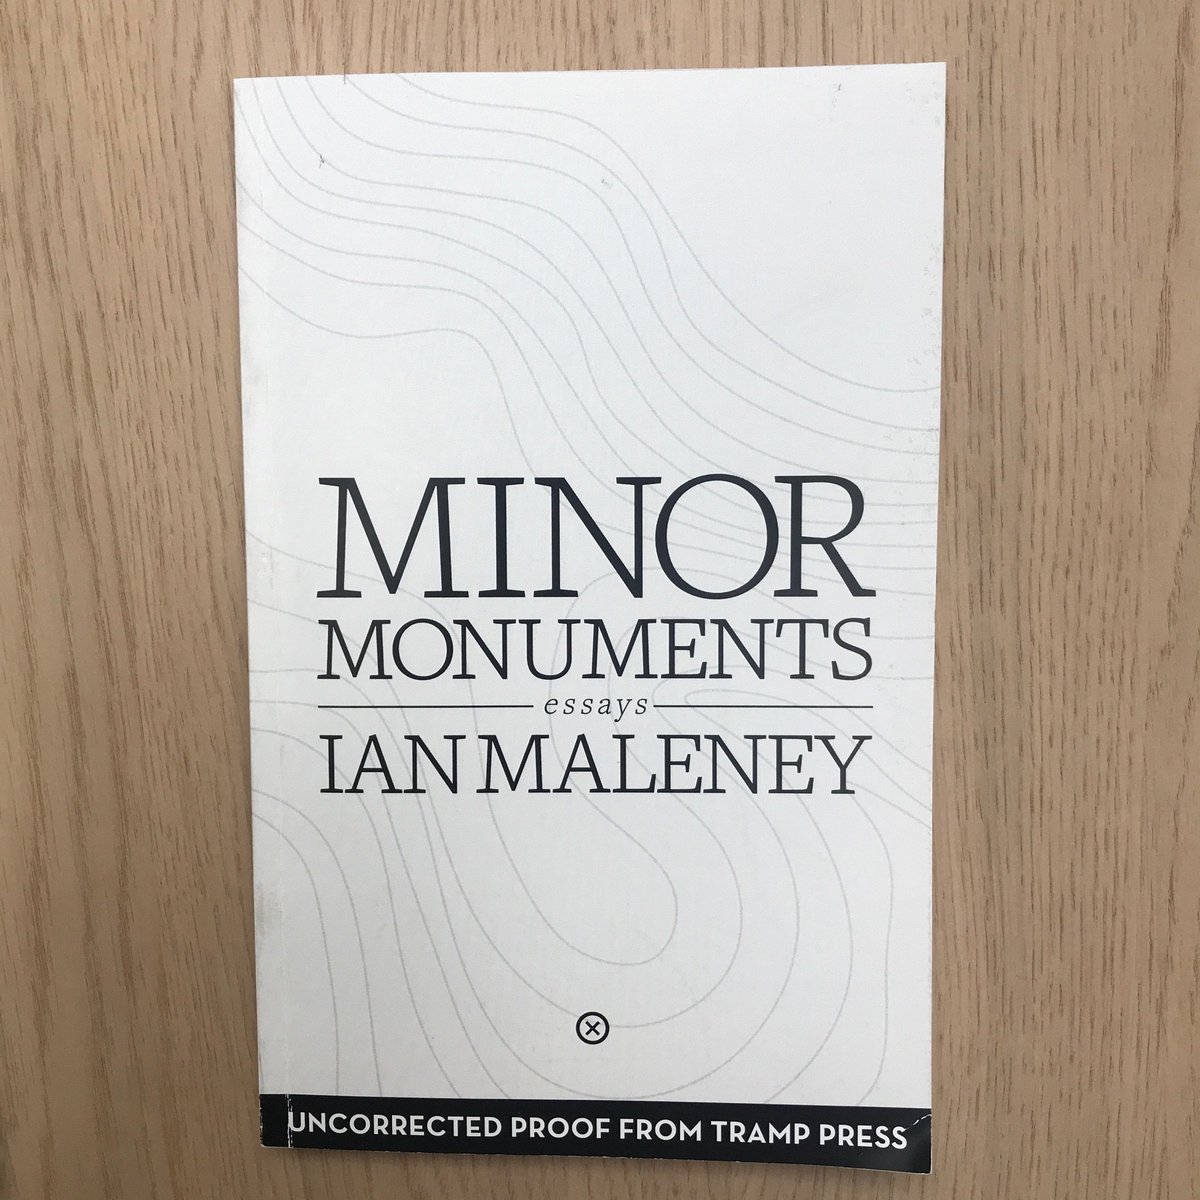 Powerful & evocative writing here by @ianmaleney on the art of listening, illness, landscape, memory, family ties & leaving & returning to the home place. Superb reflections on the work of Brian Eno, Seamus Heaney & Pat Collins too.